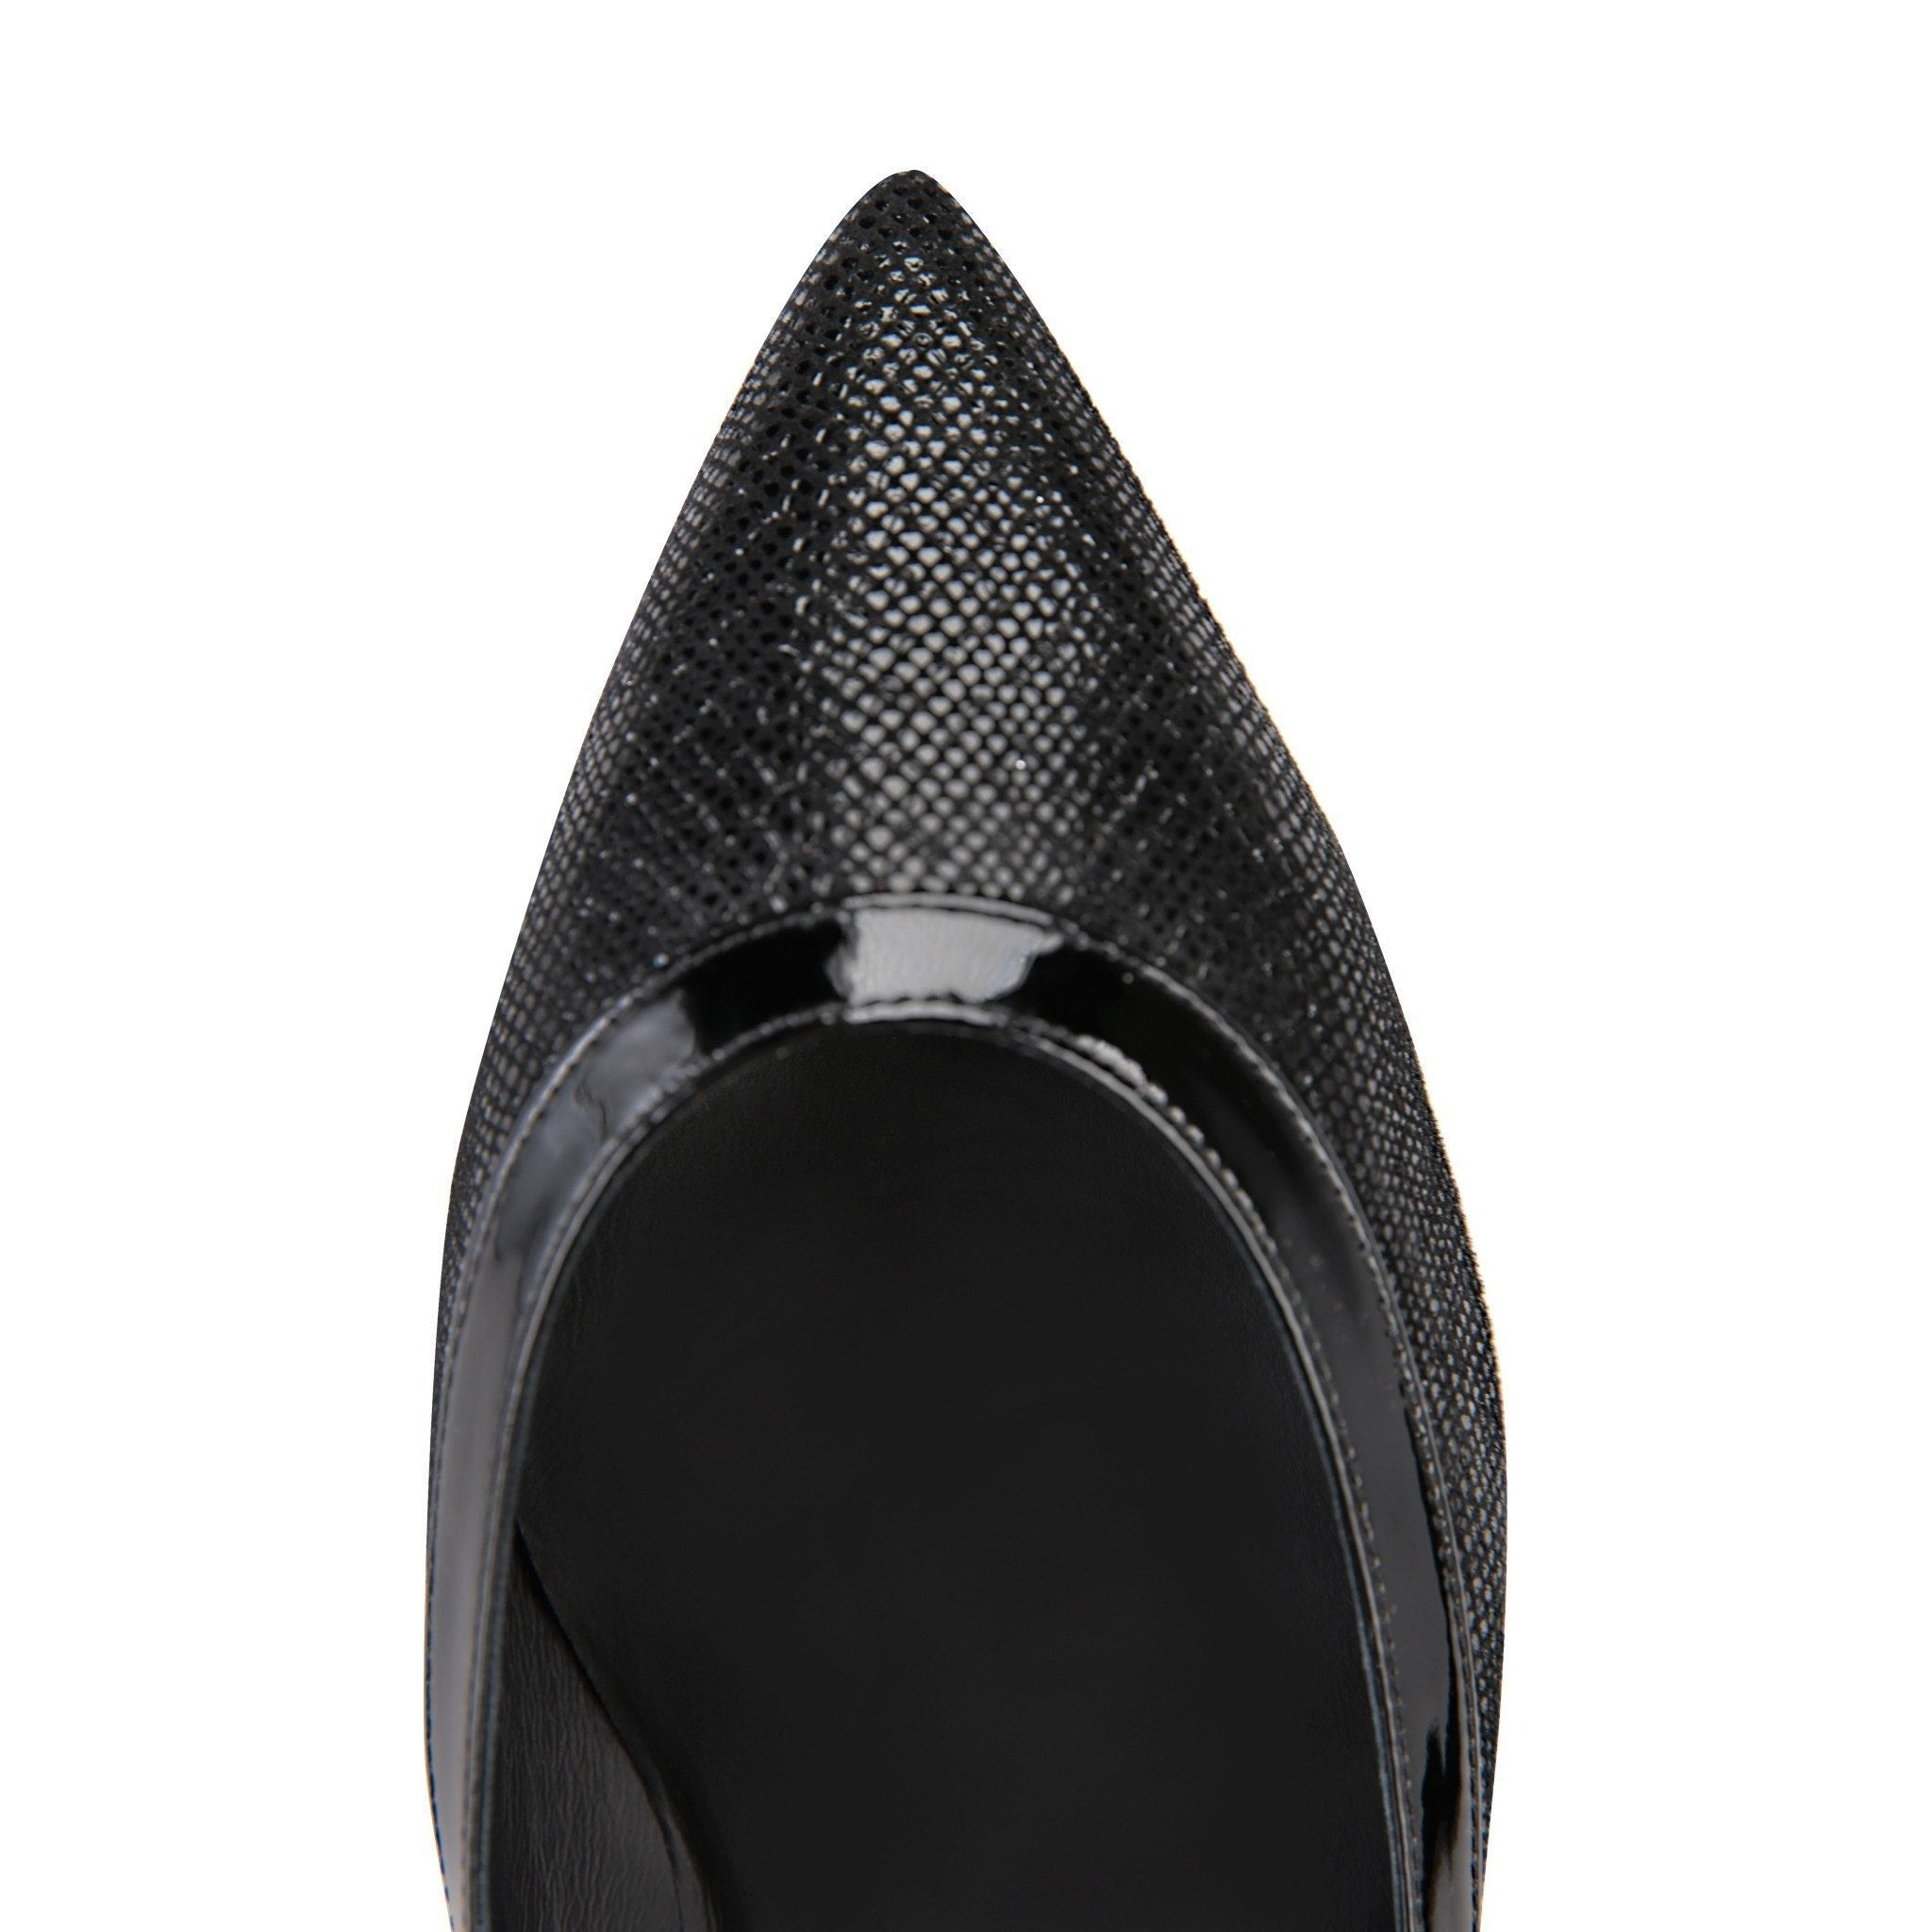 MILANO - Karung Nero + Patent, VIAJIYU - Women's Hand Made Sustainable Luxury Shoes. Made in Italy. Made to Order.